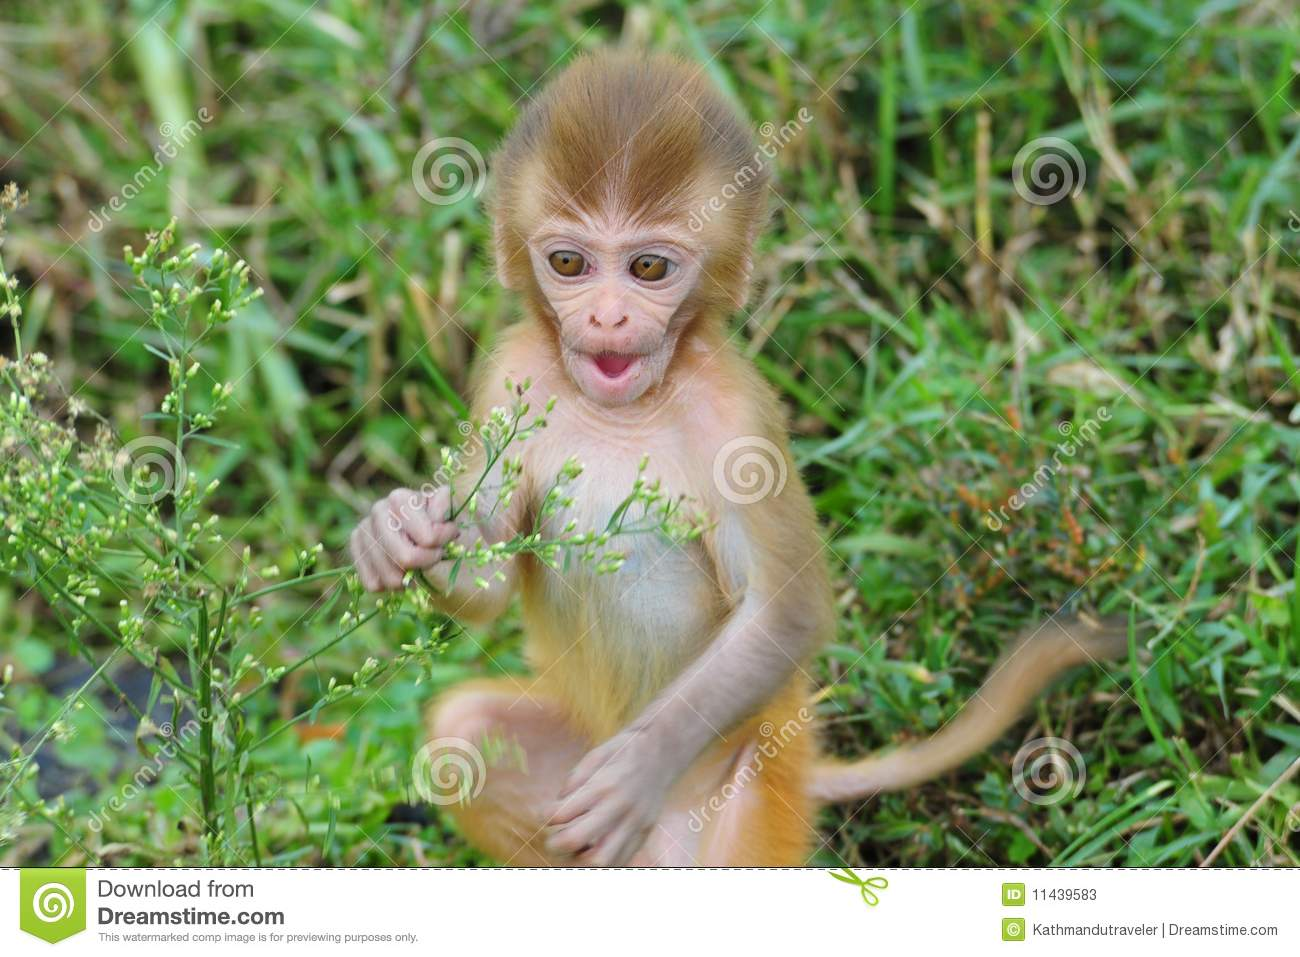 Cute Live Wallpaper Download Baby Rhesus Macaque Monkey Stock Image Image Of Wild